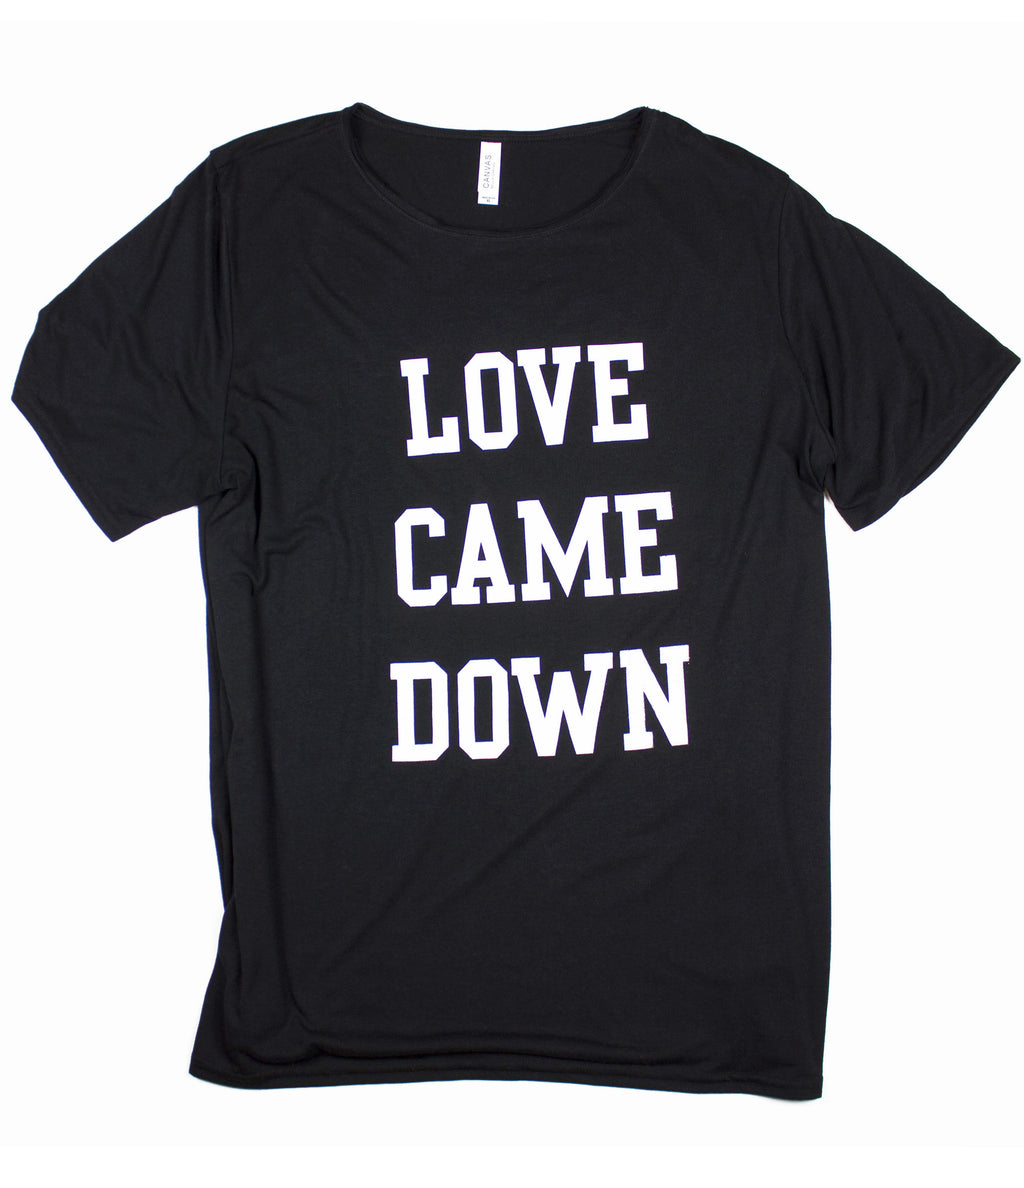 LOVE CAME DOWN RAW NECK T-SHIRT